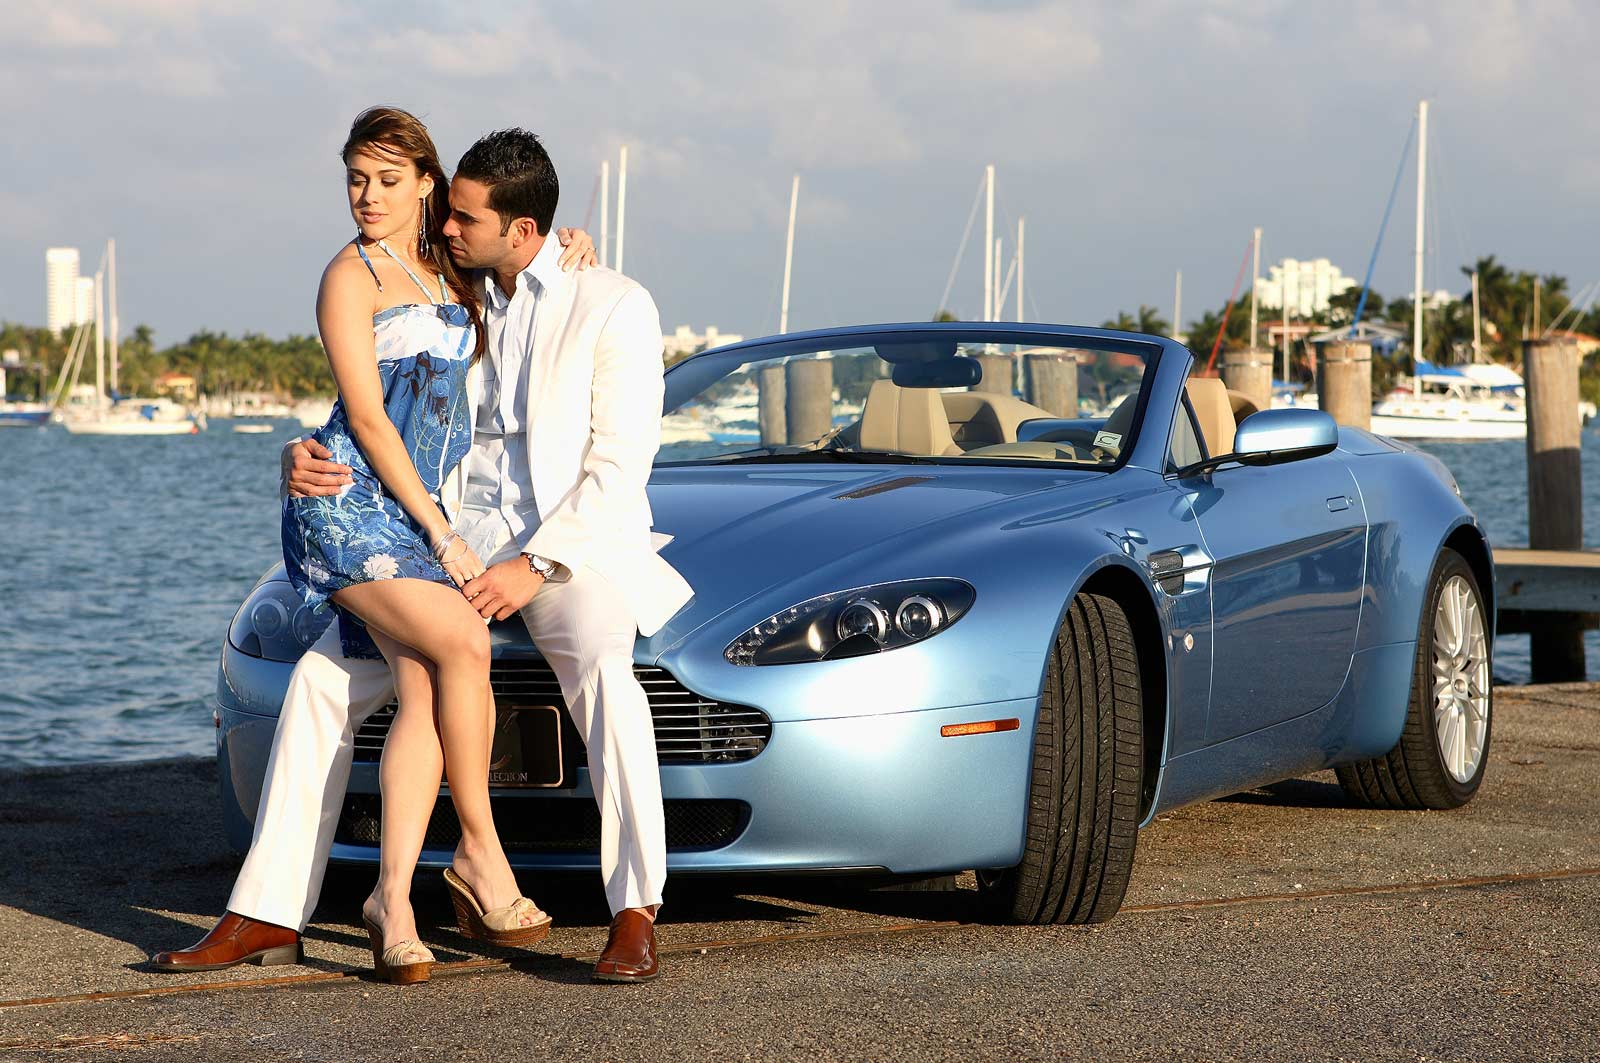 Couple Engaged in front of blue sport car